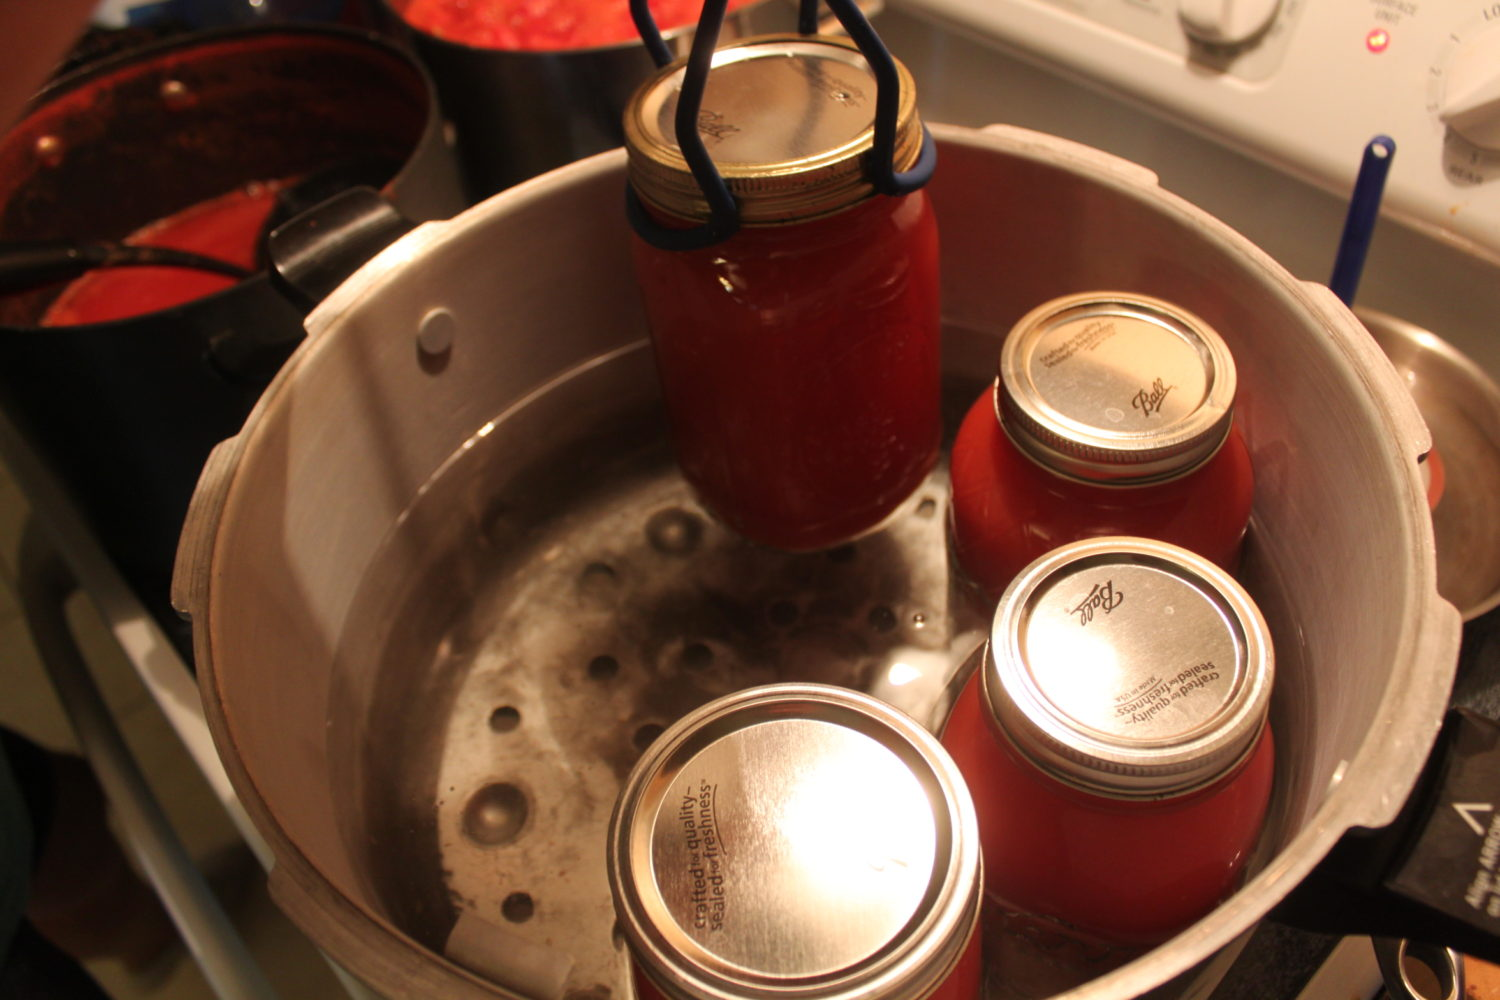 The 'Must-Haves' for Canning!